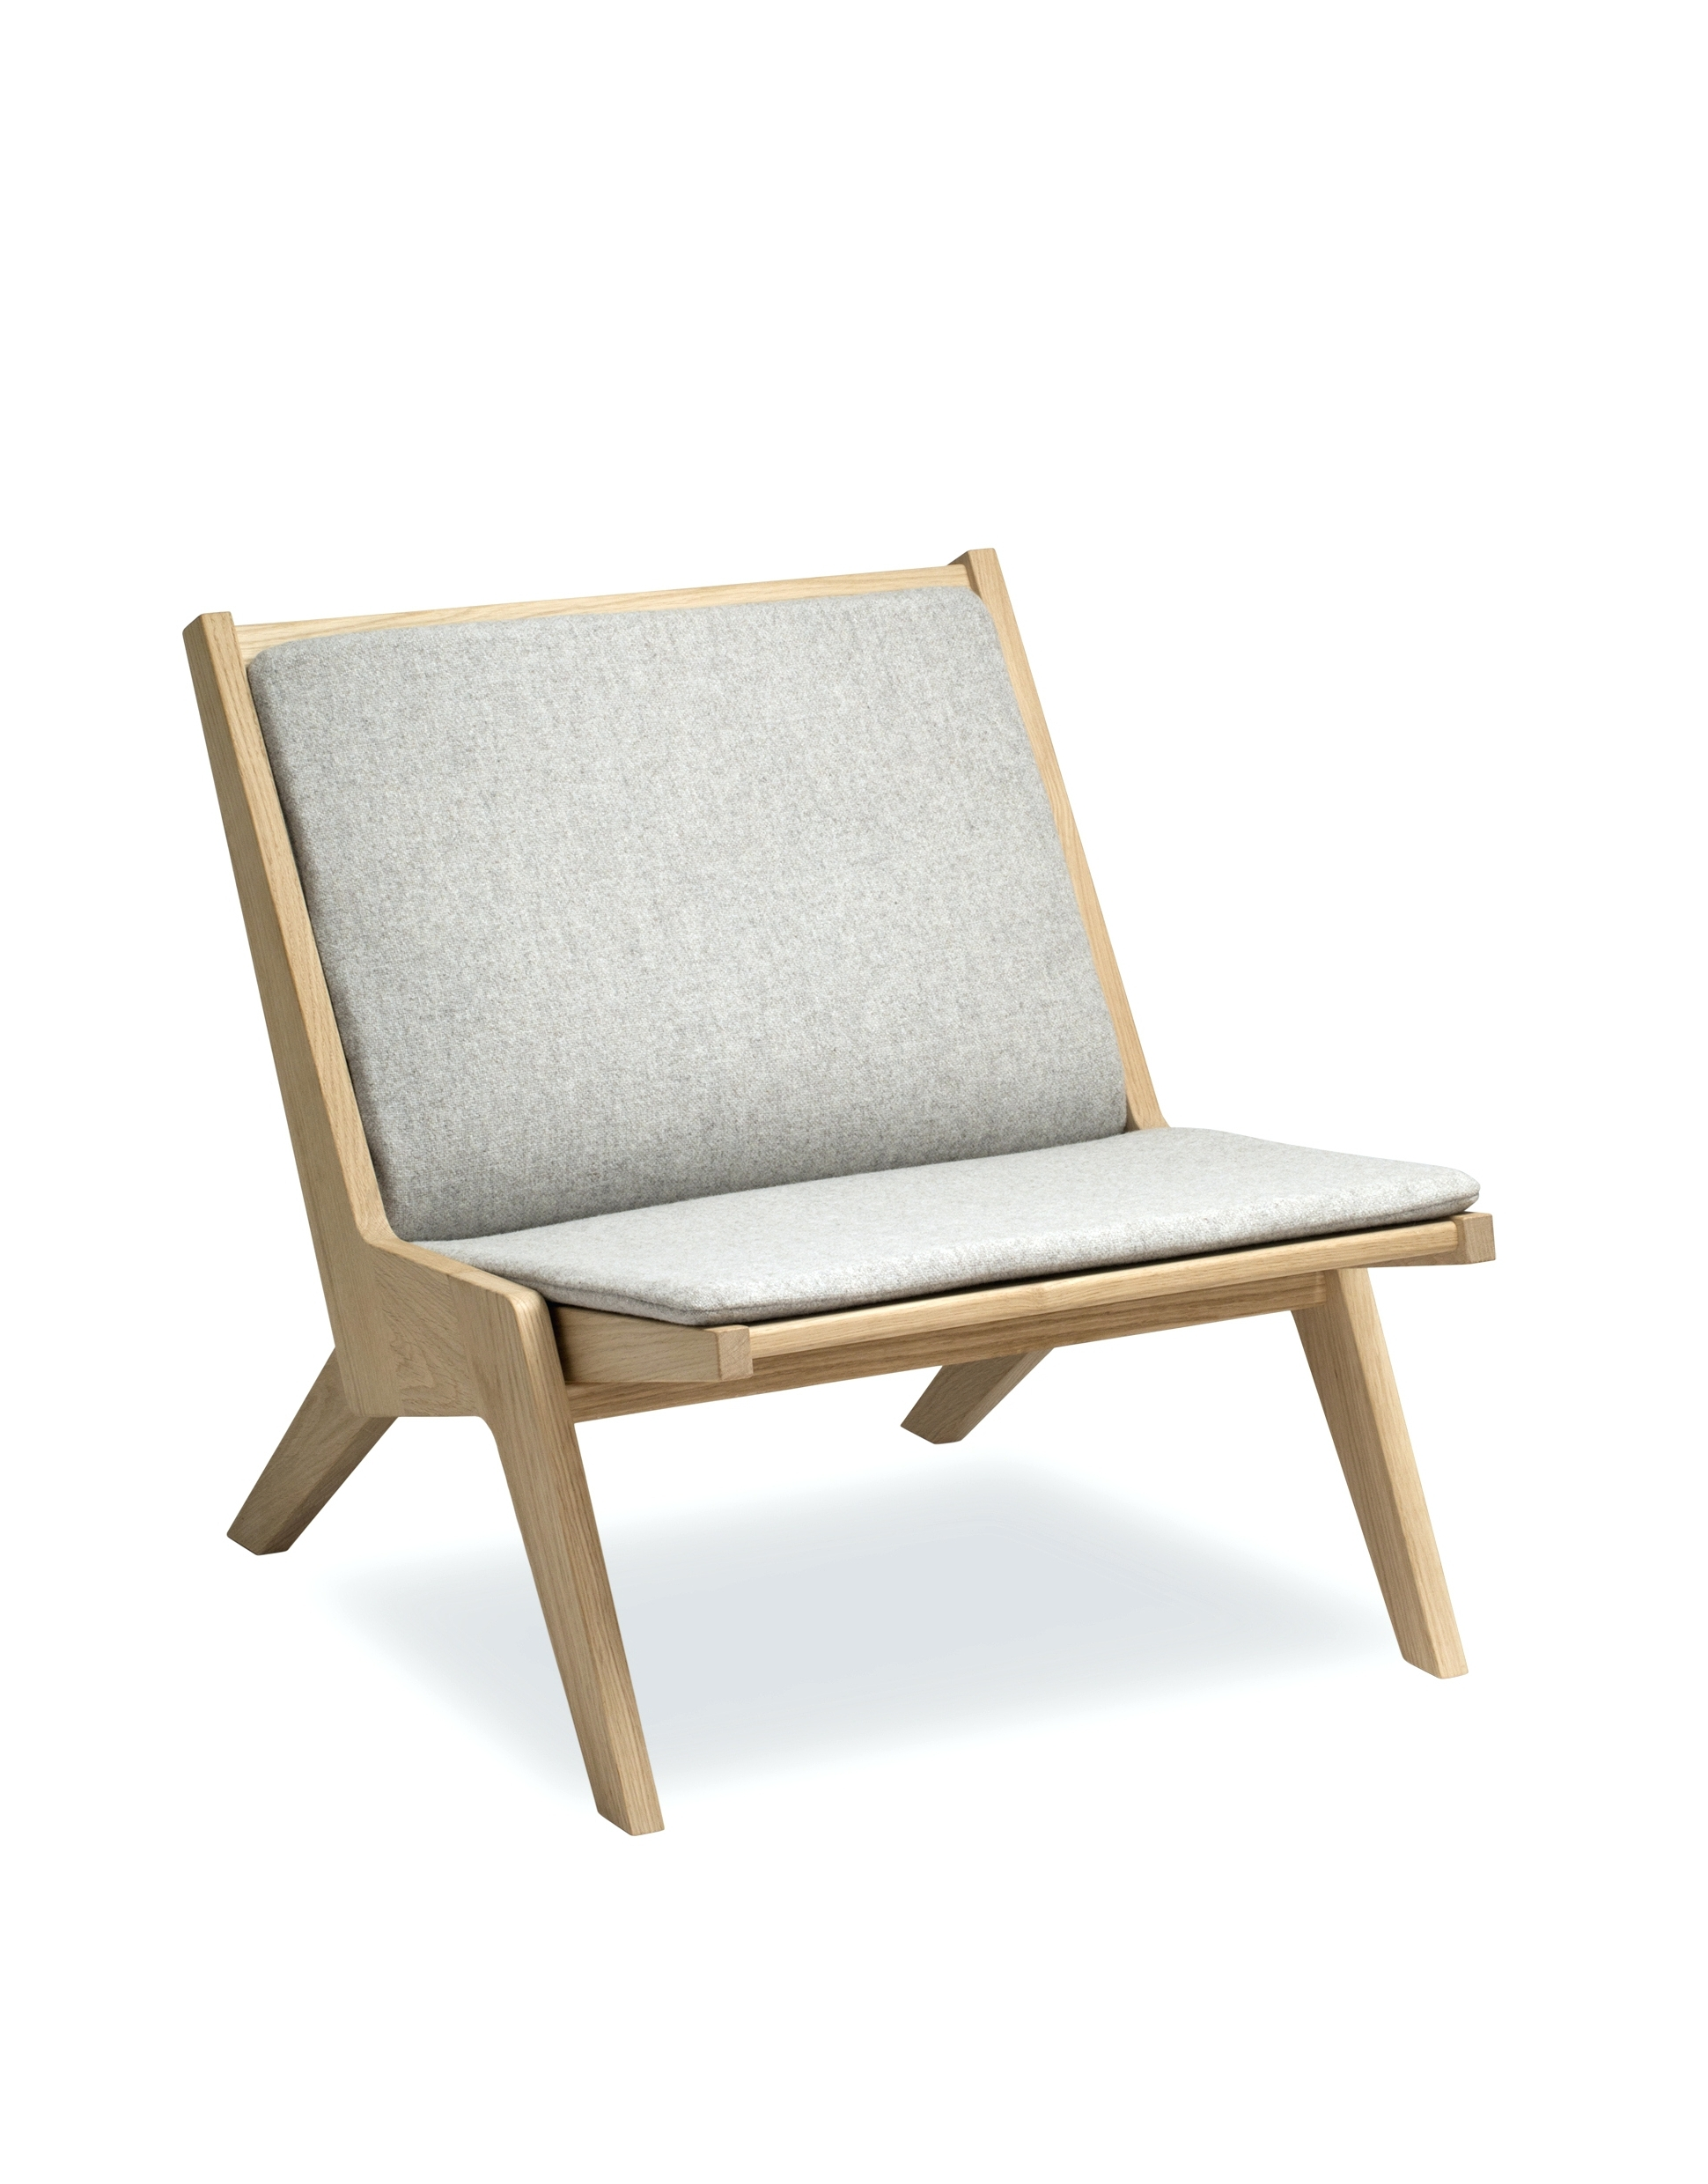 Web Chaise Lounge Lawn Chairs Within Famous Web Chaise Lounge Lawn Chair • Lounge Chairs Ideas (View 14 of 15)